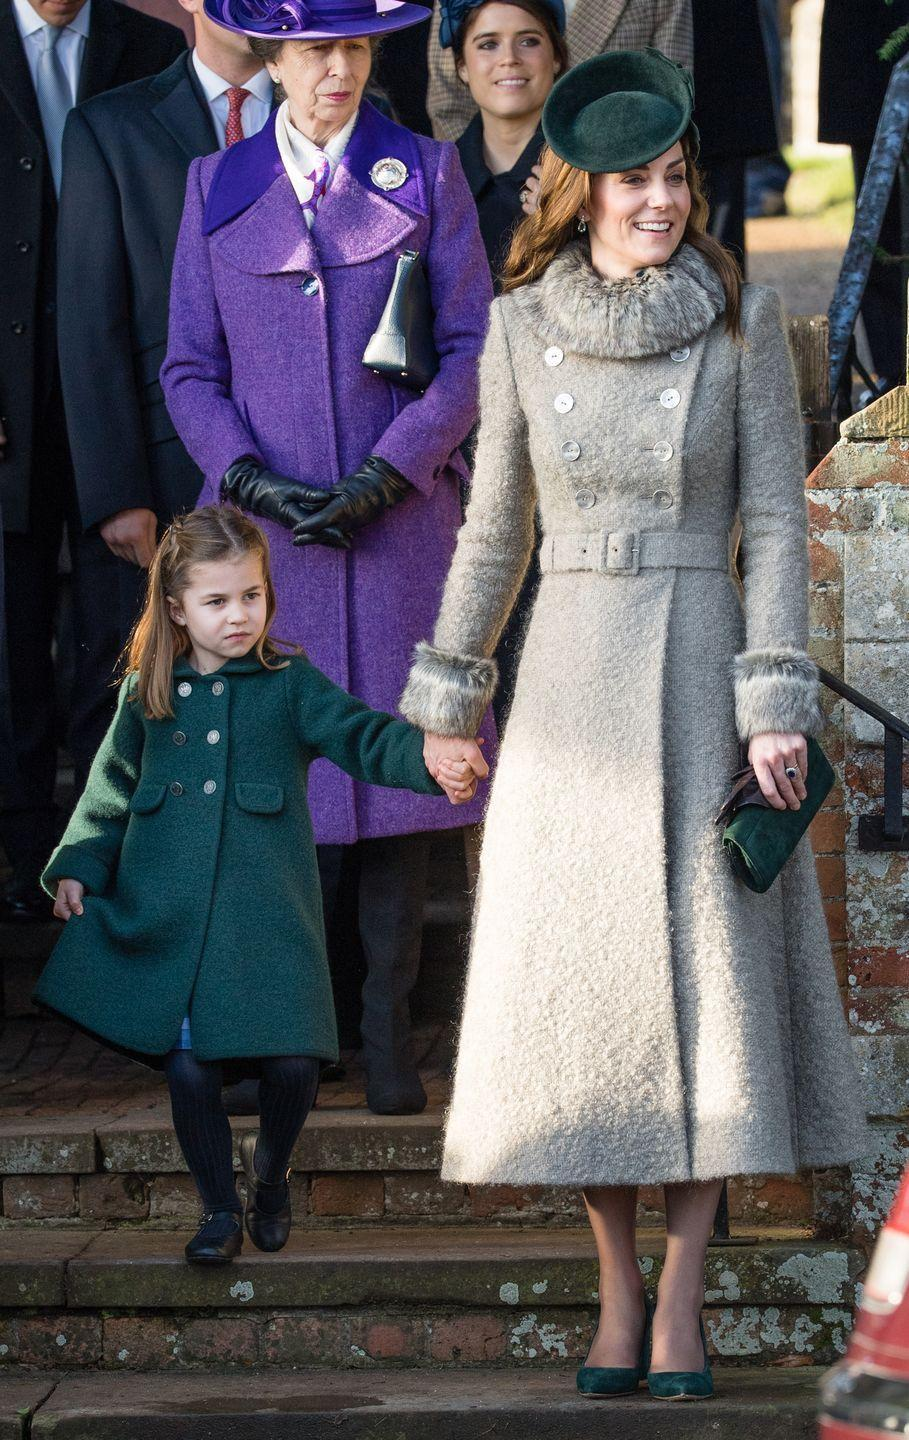 <p>The Duchess of Cambridge attends service at Church of St. Mary Magdalene on the Sandringham. She wore a coat by Catherine Walker. </p>